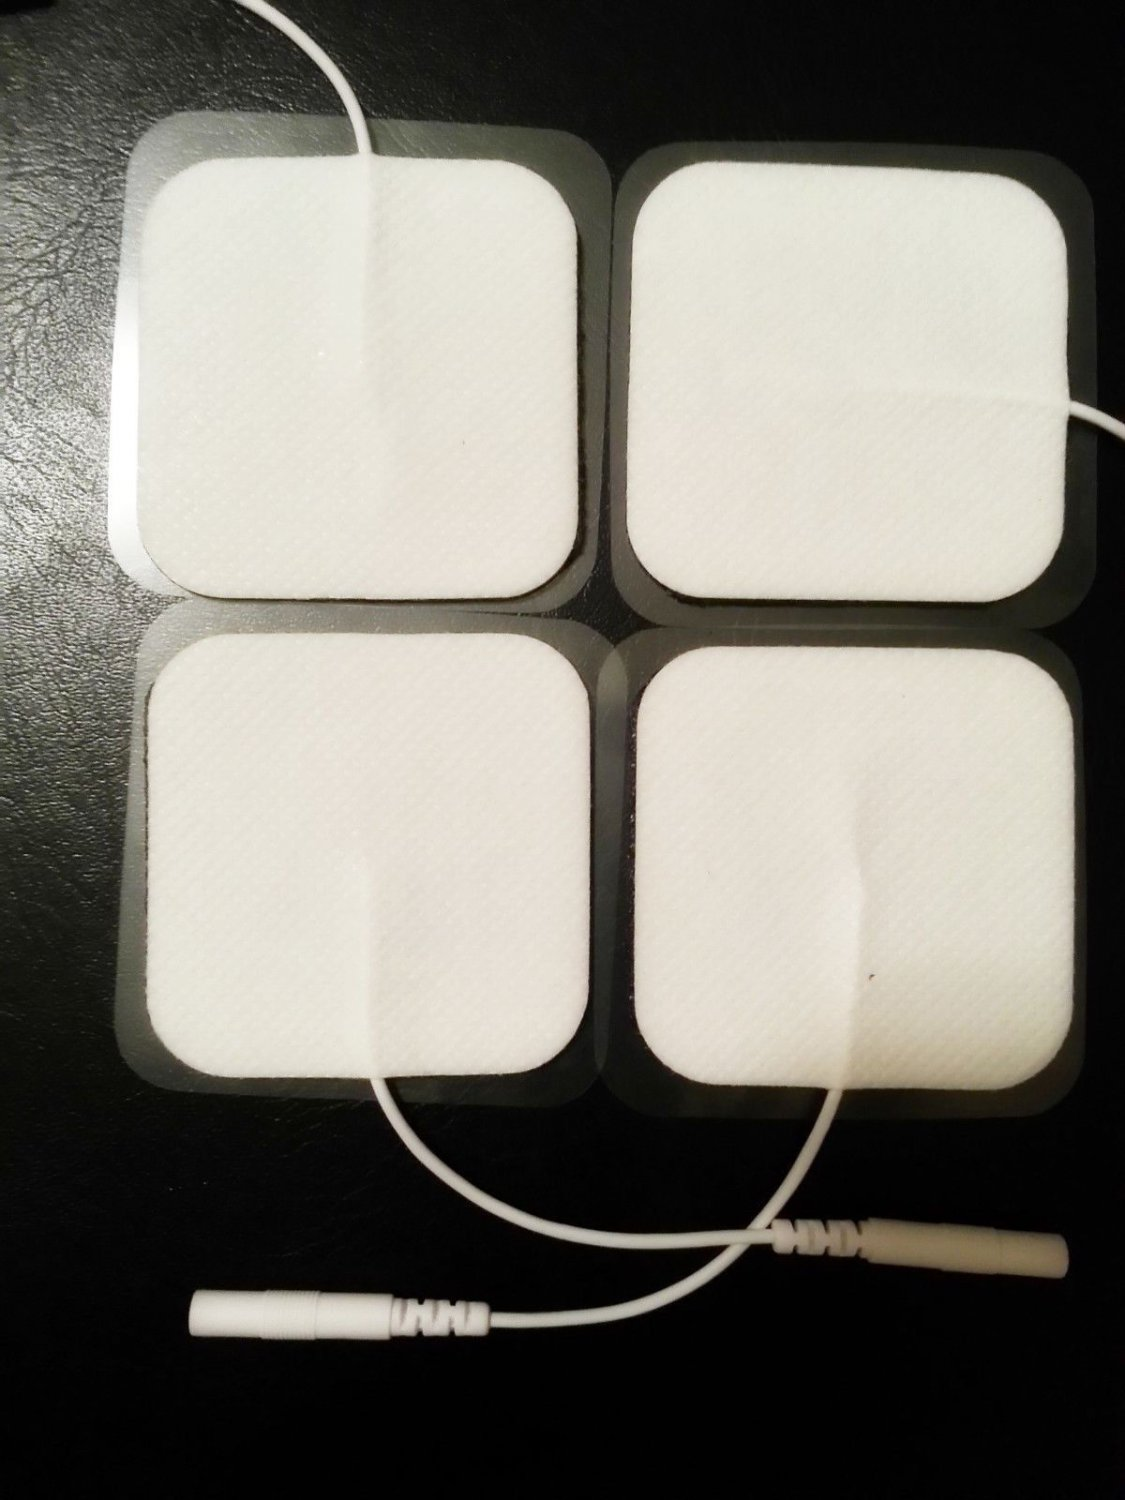 8 PC SQUARE MASSAGE PADS FOR TOP TENS 3000 7000 TWIN STIM AND TWIN STIM PLUS